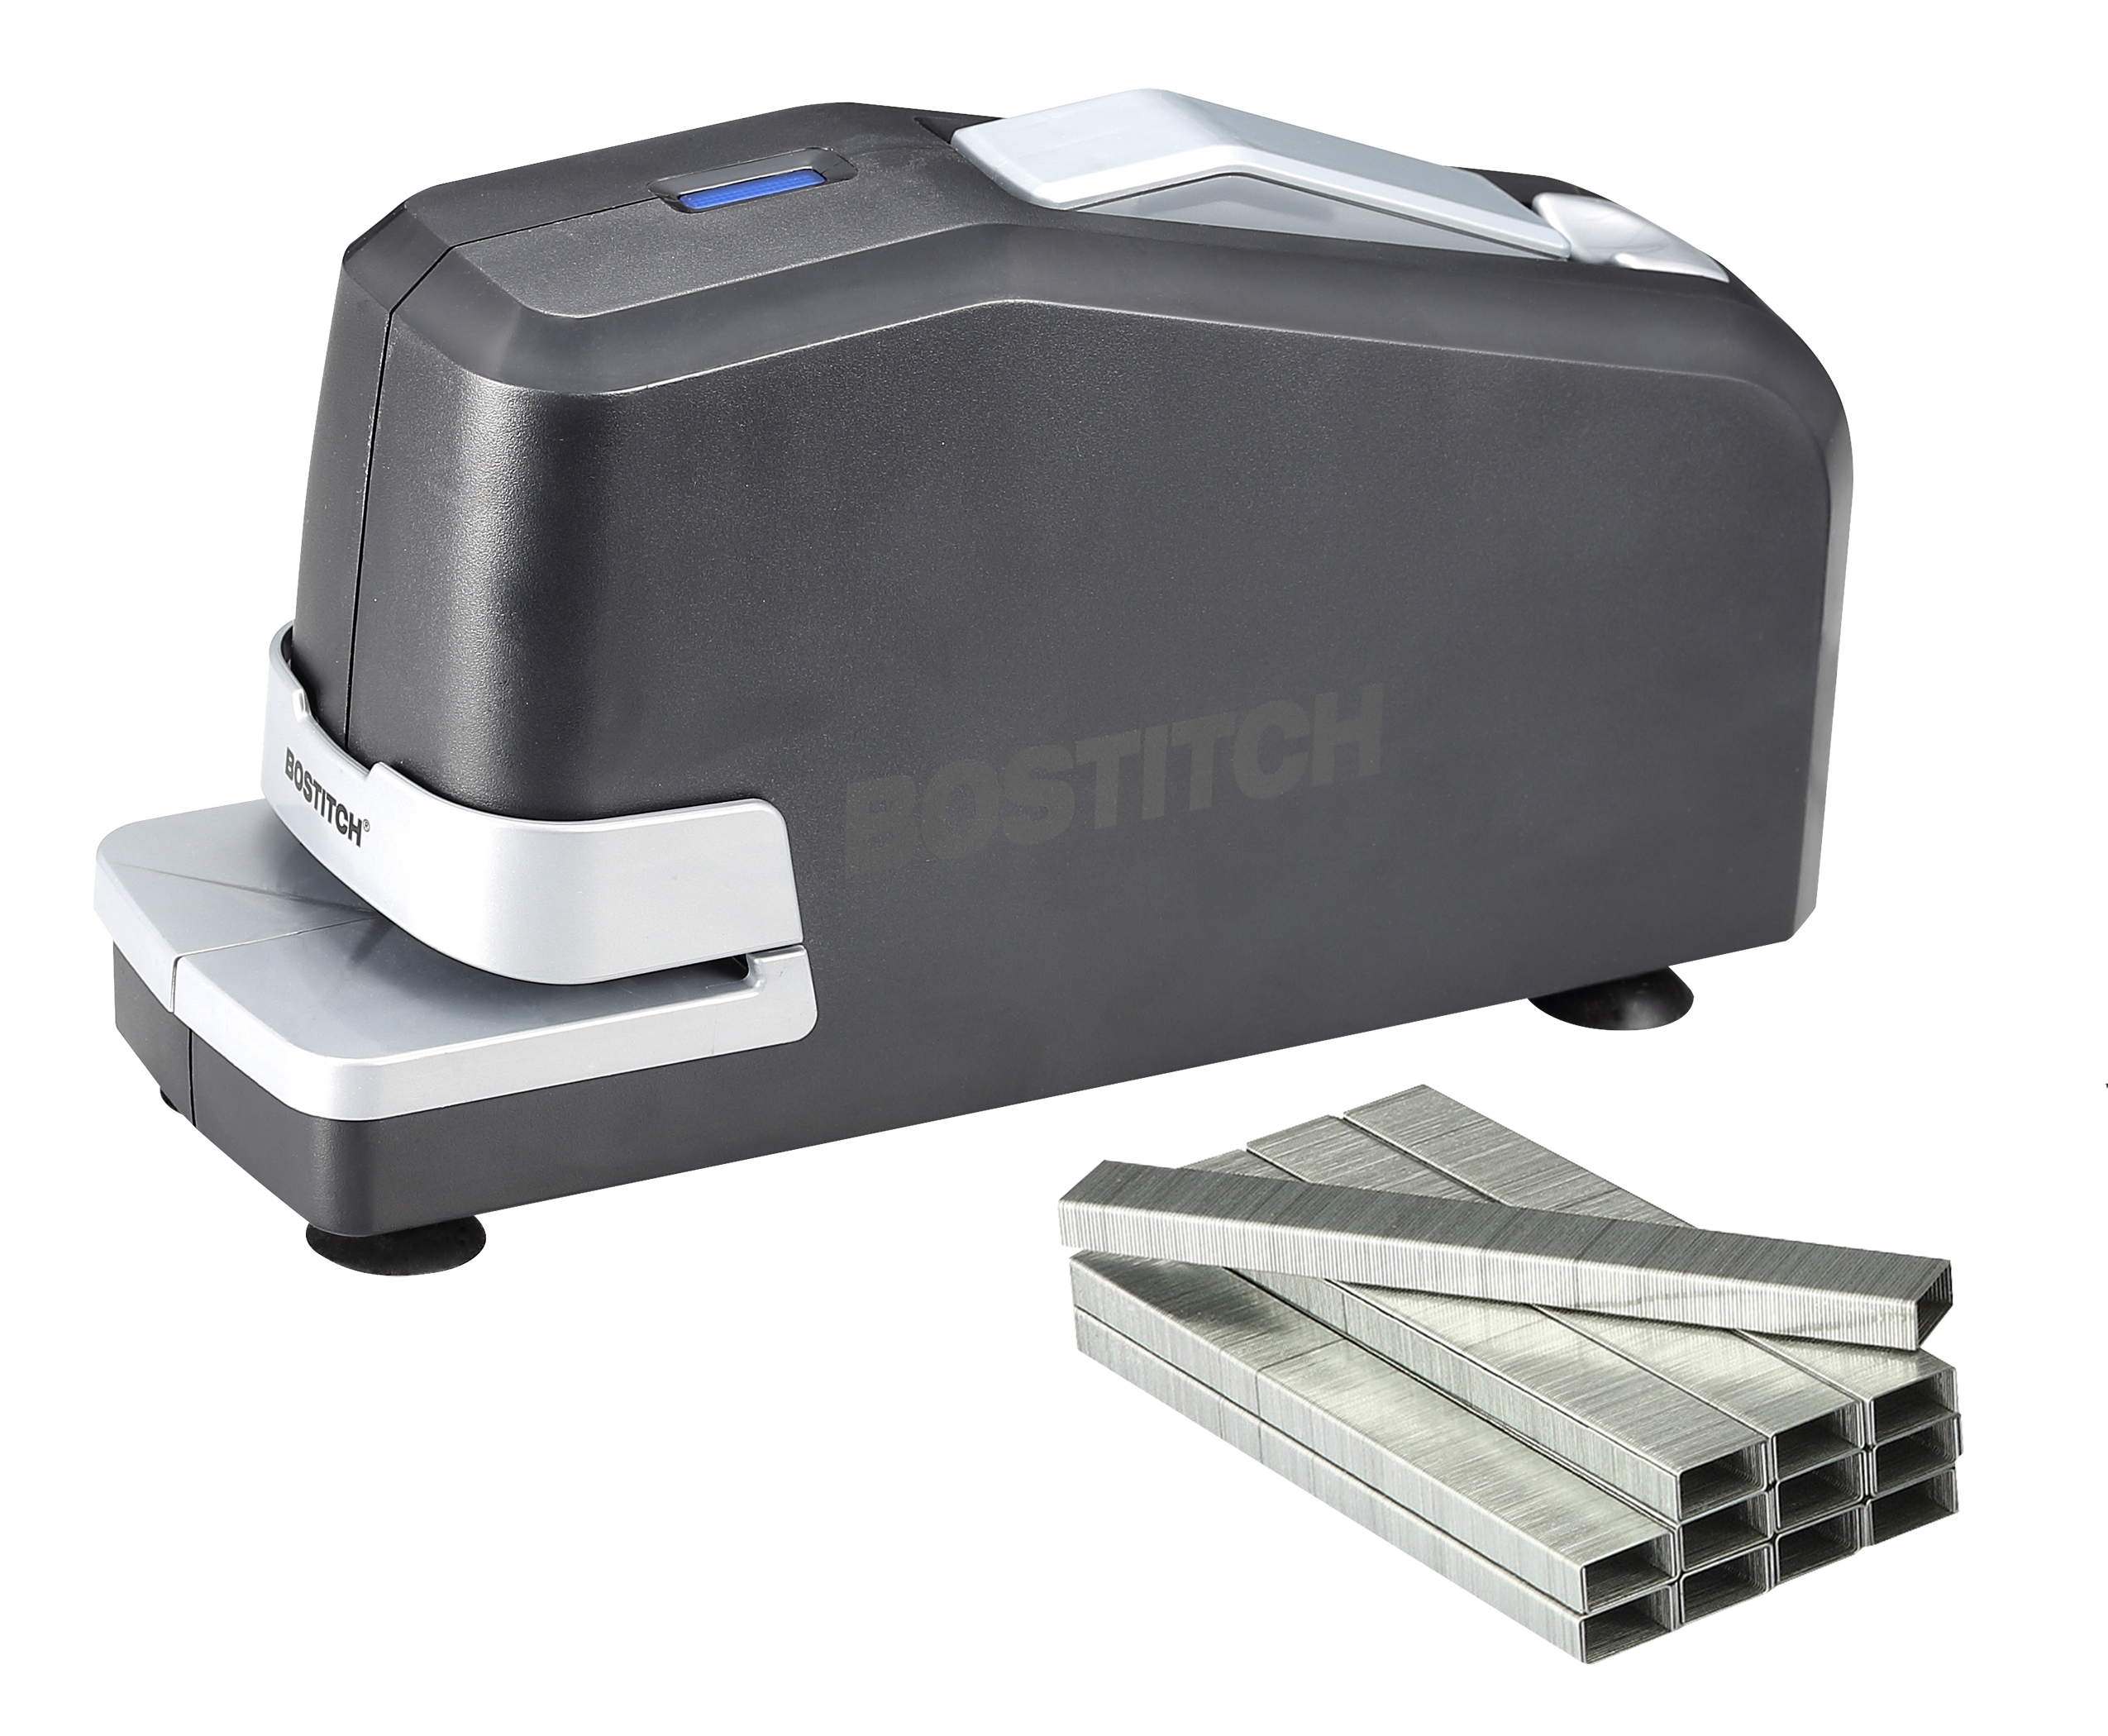 Bostitch Impulse 25 Electric Stapler Value Kit, Black by Amax